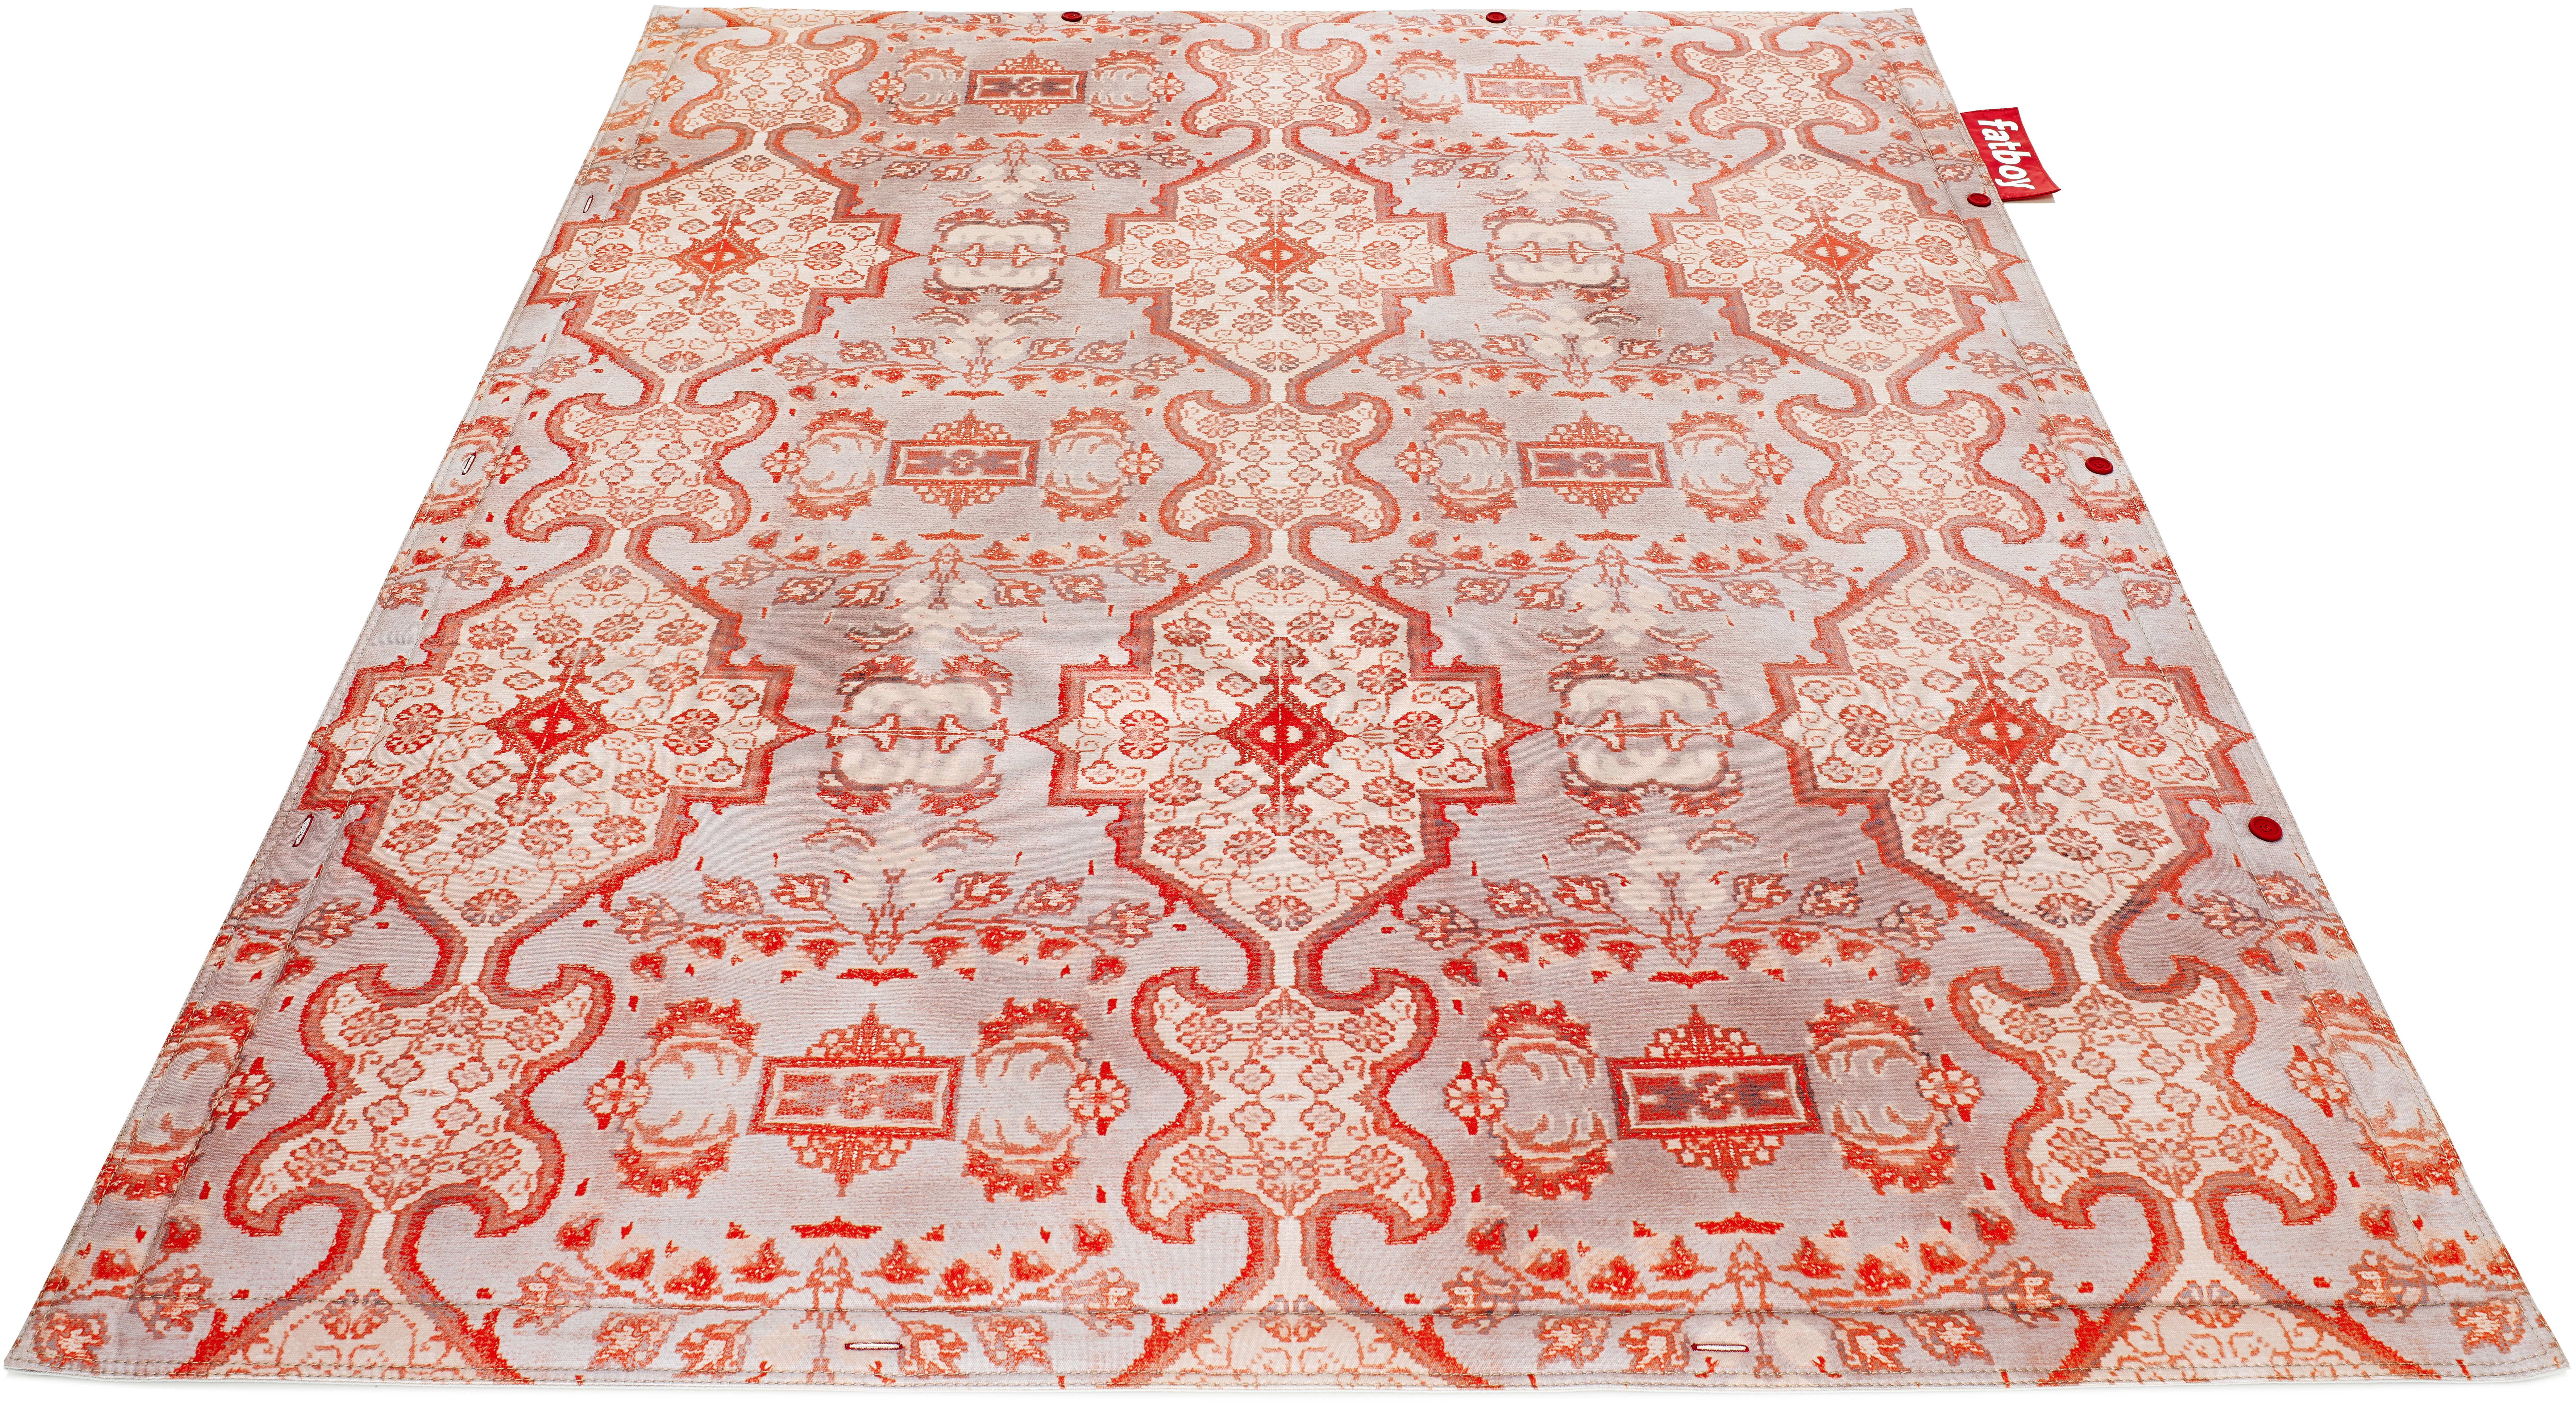 Furniture - Carpets - Non-Flying Carpet Rug by Fatboy - Small Persian Orange - Synthetic fabric